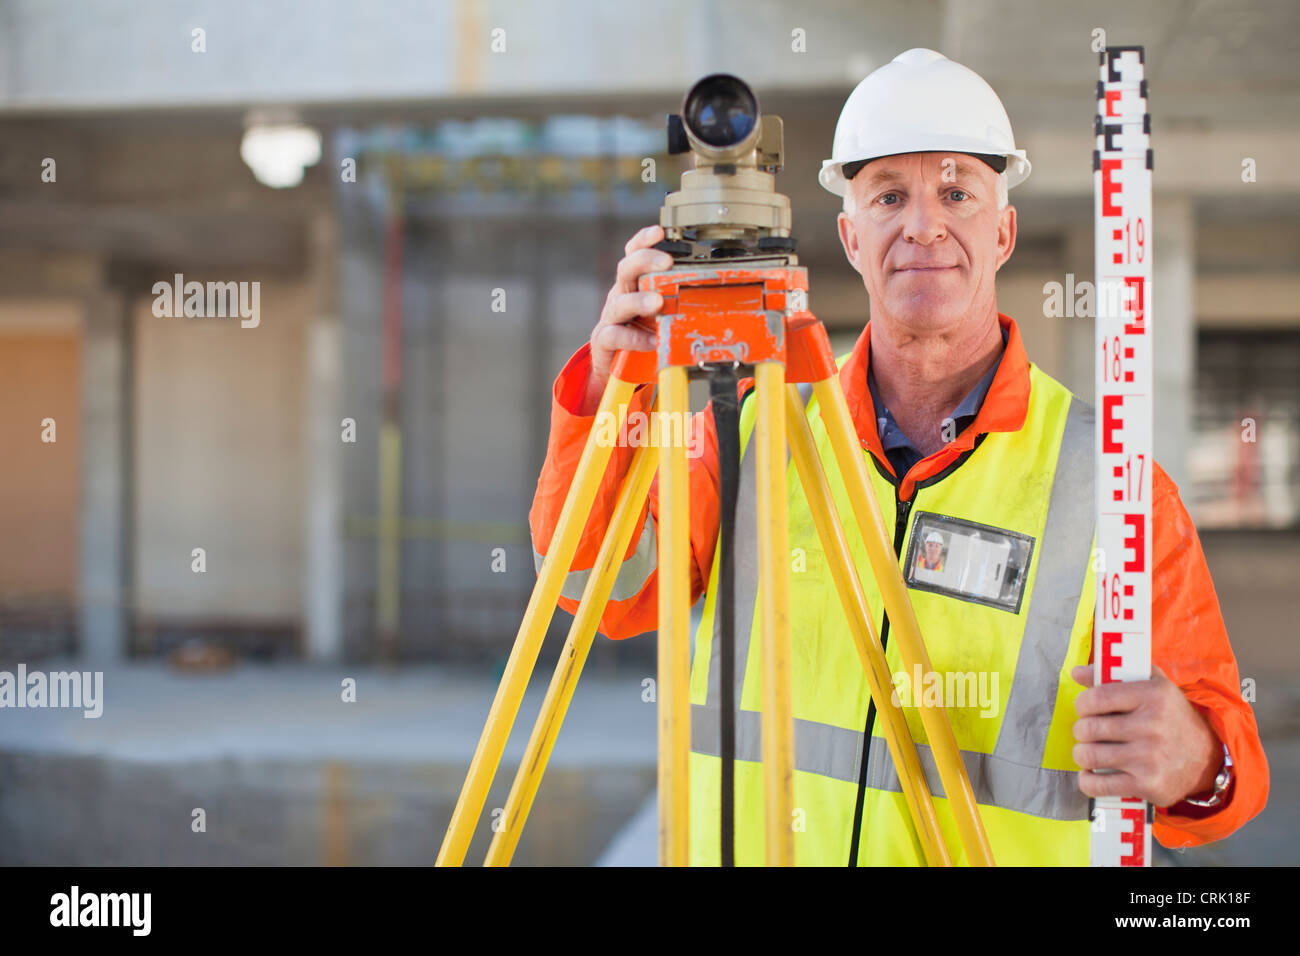 Worker using equipment on site - Stock Image